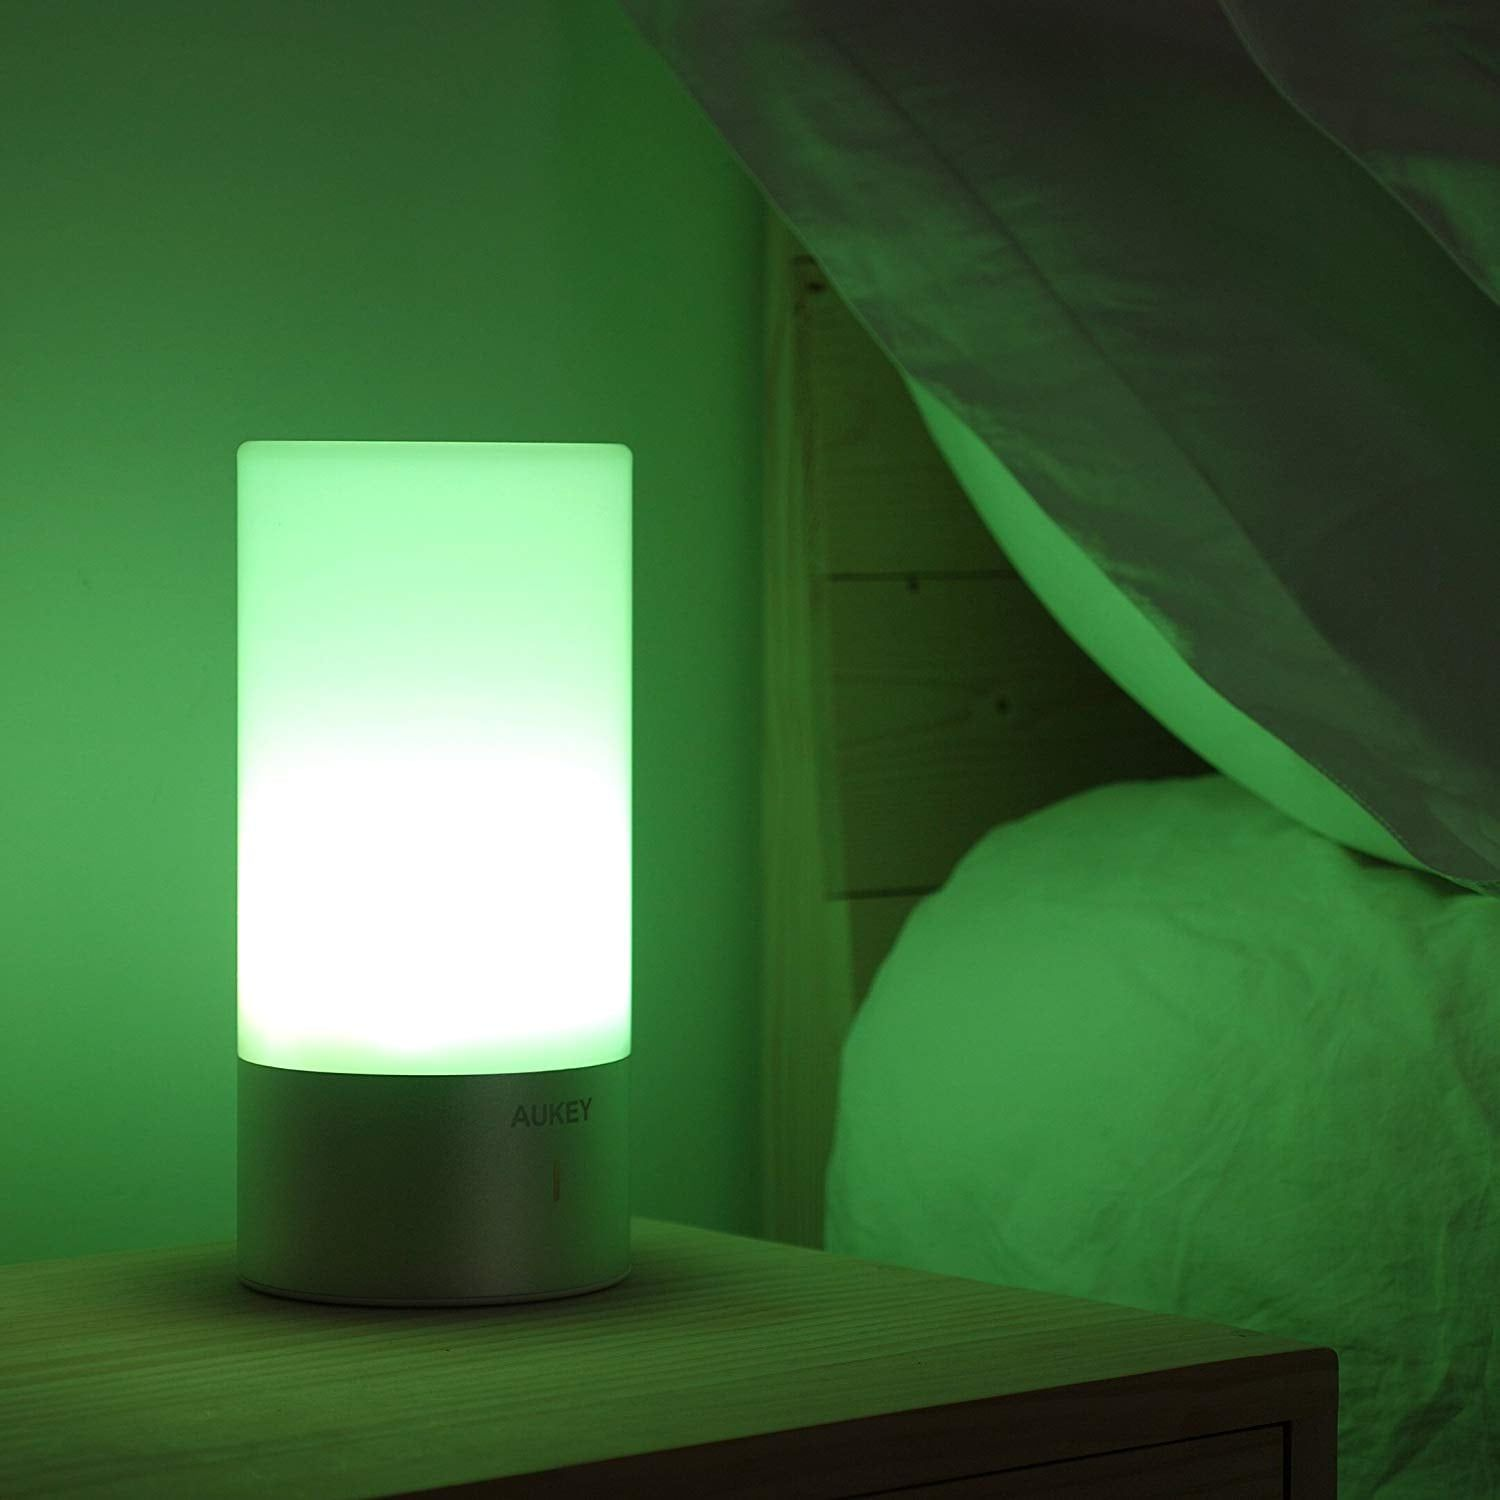 Aukey Touch Sensor Bedside Lamp In 2020 Bedside Lamp Touch Lamp Lamp